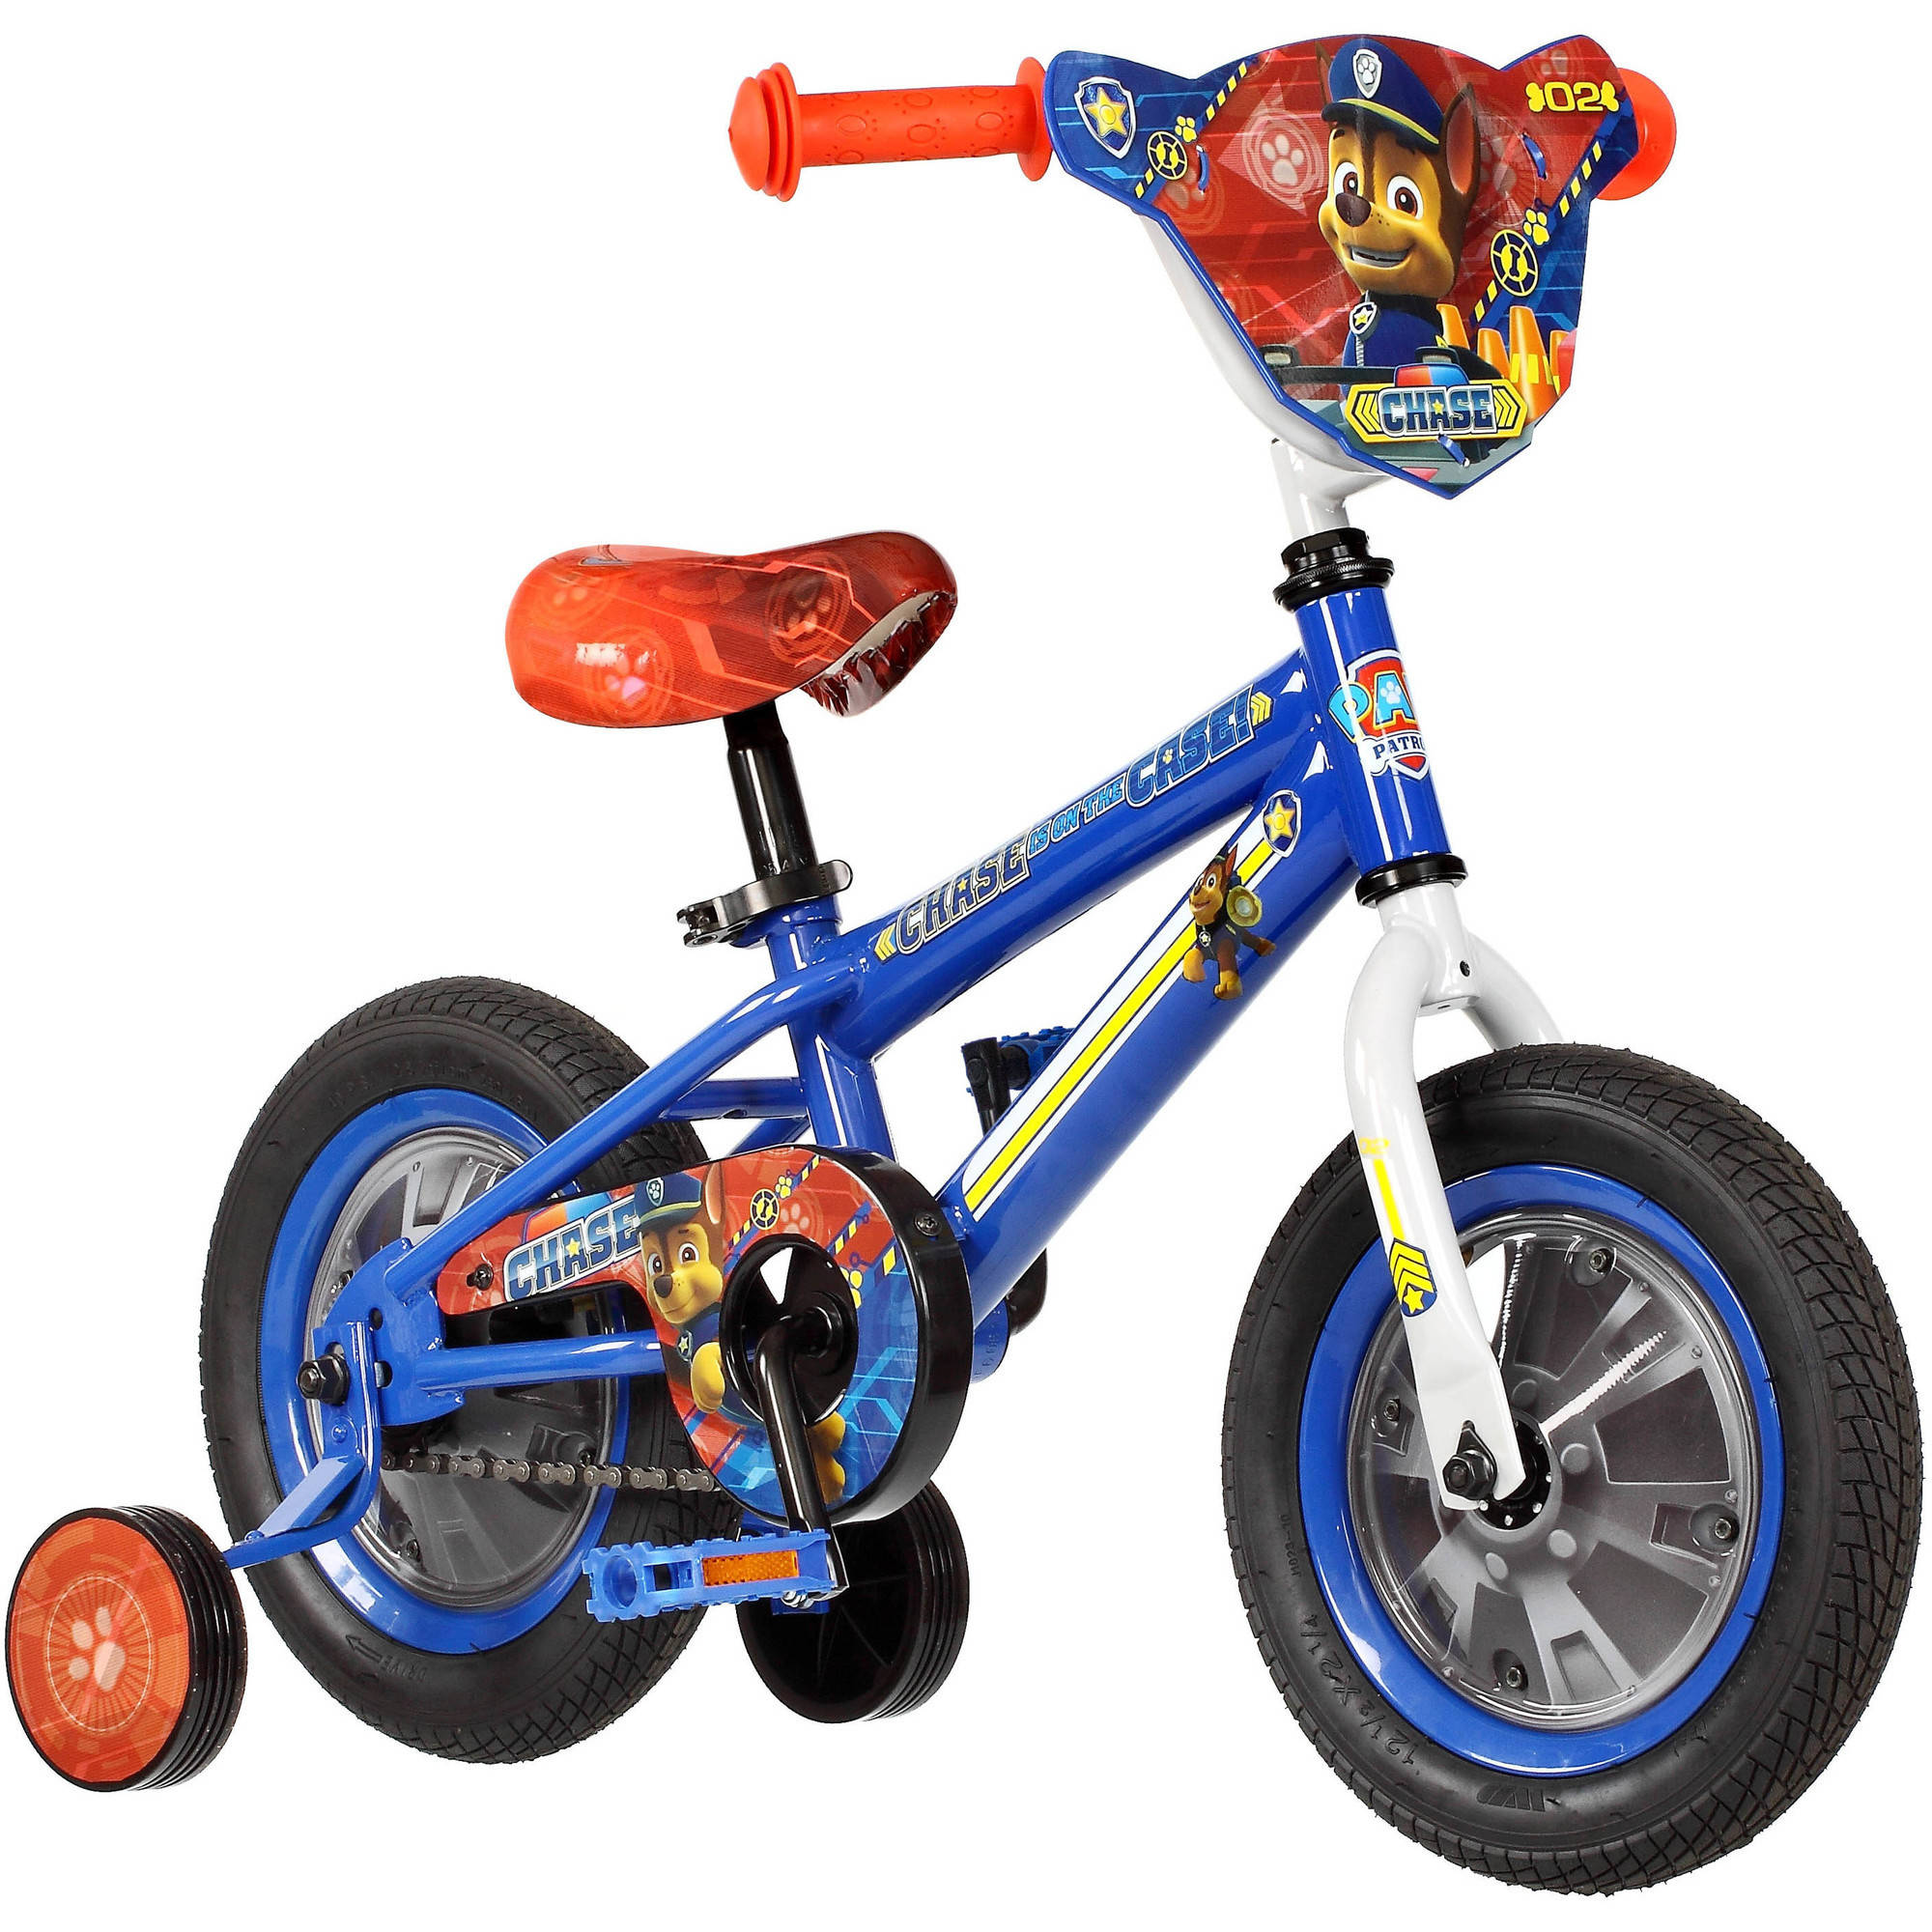 "12"" Paw Patrol Bike Featuring Chase"